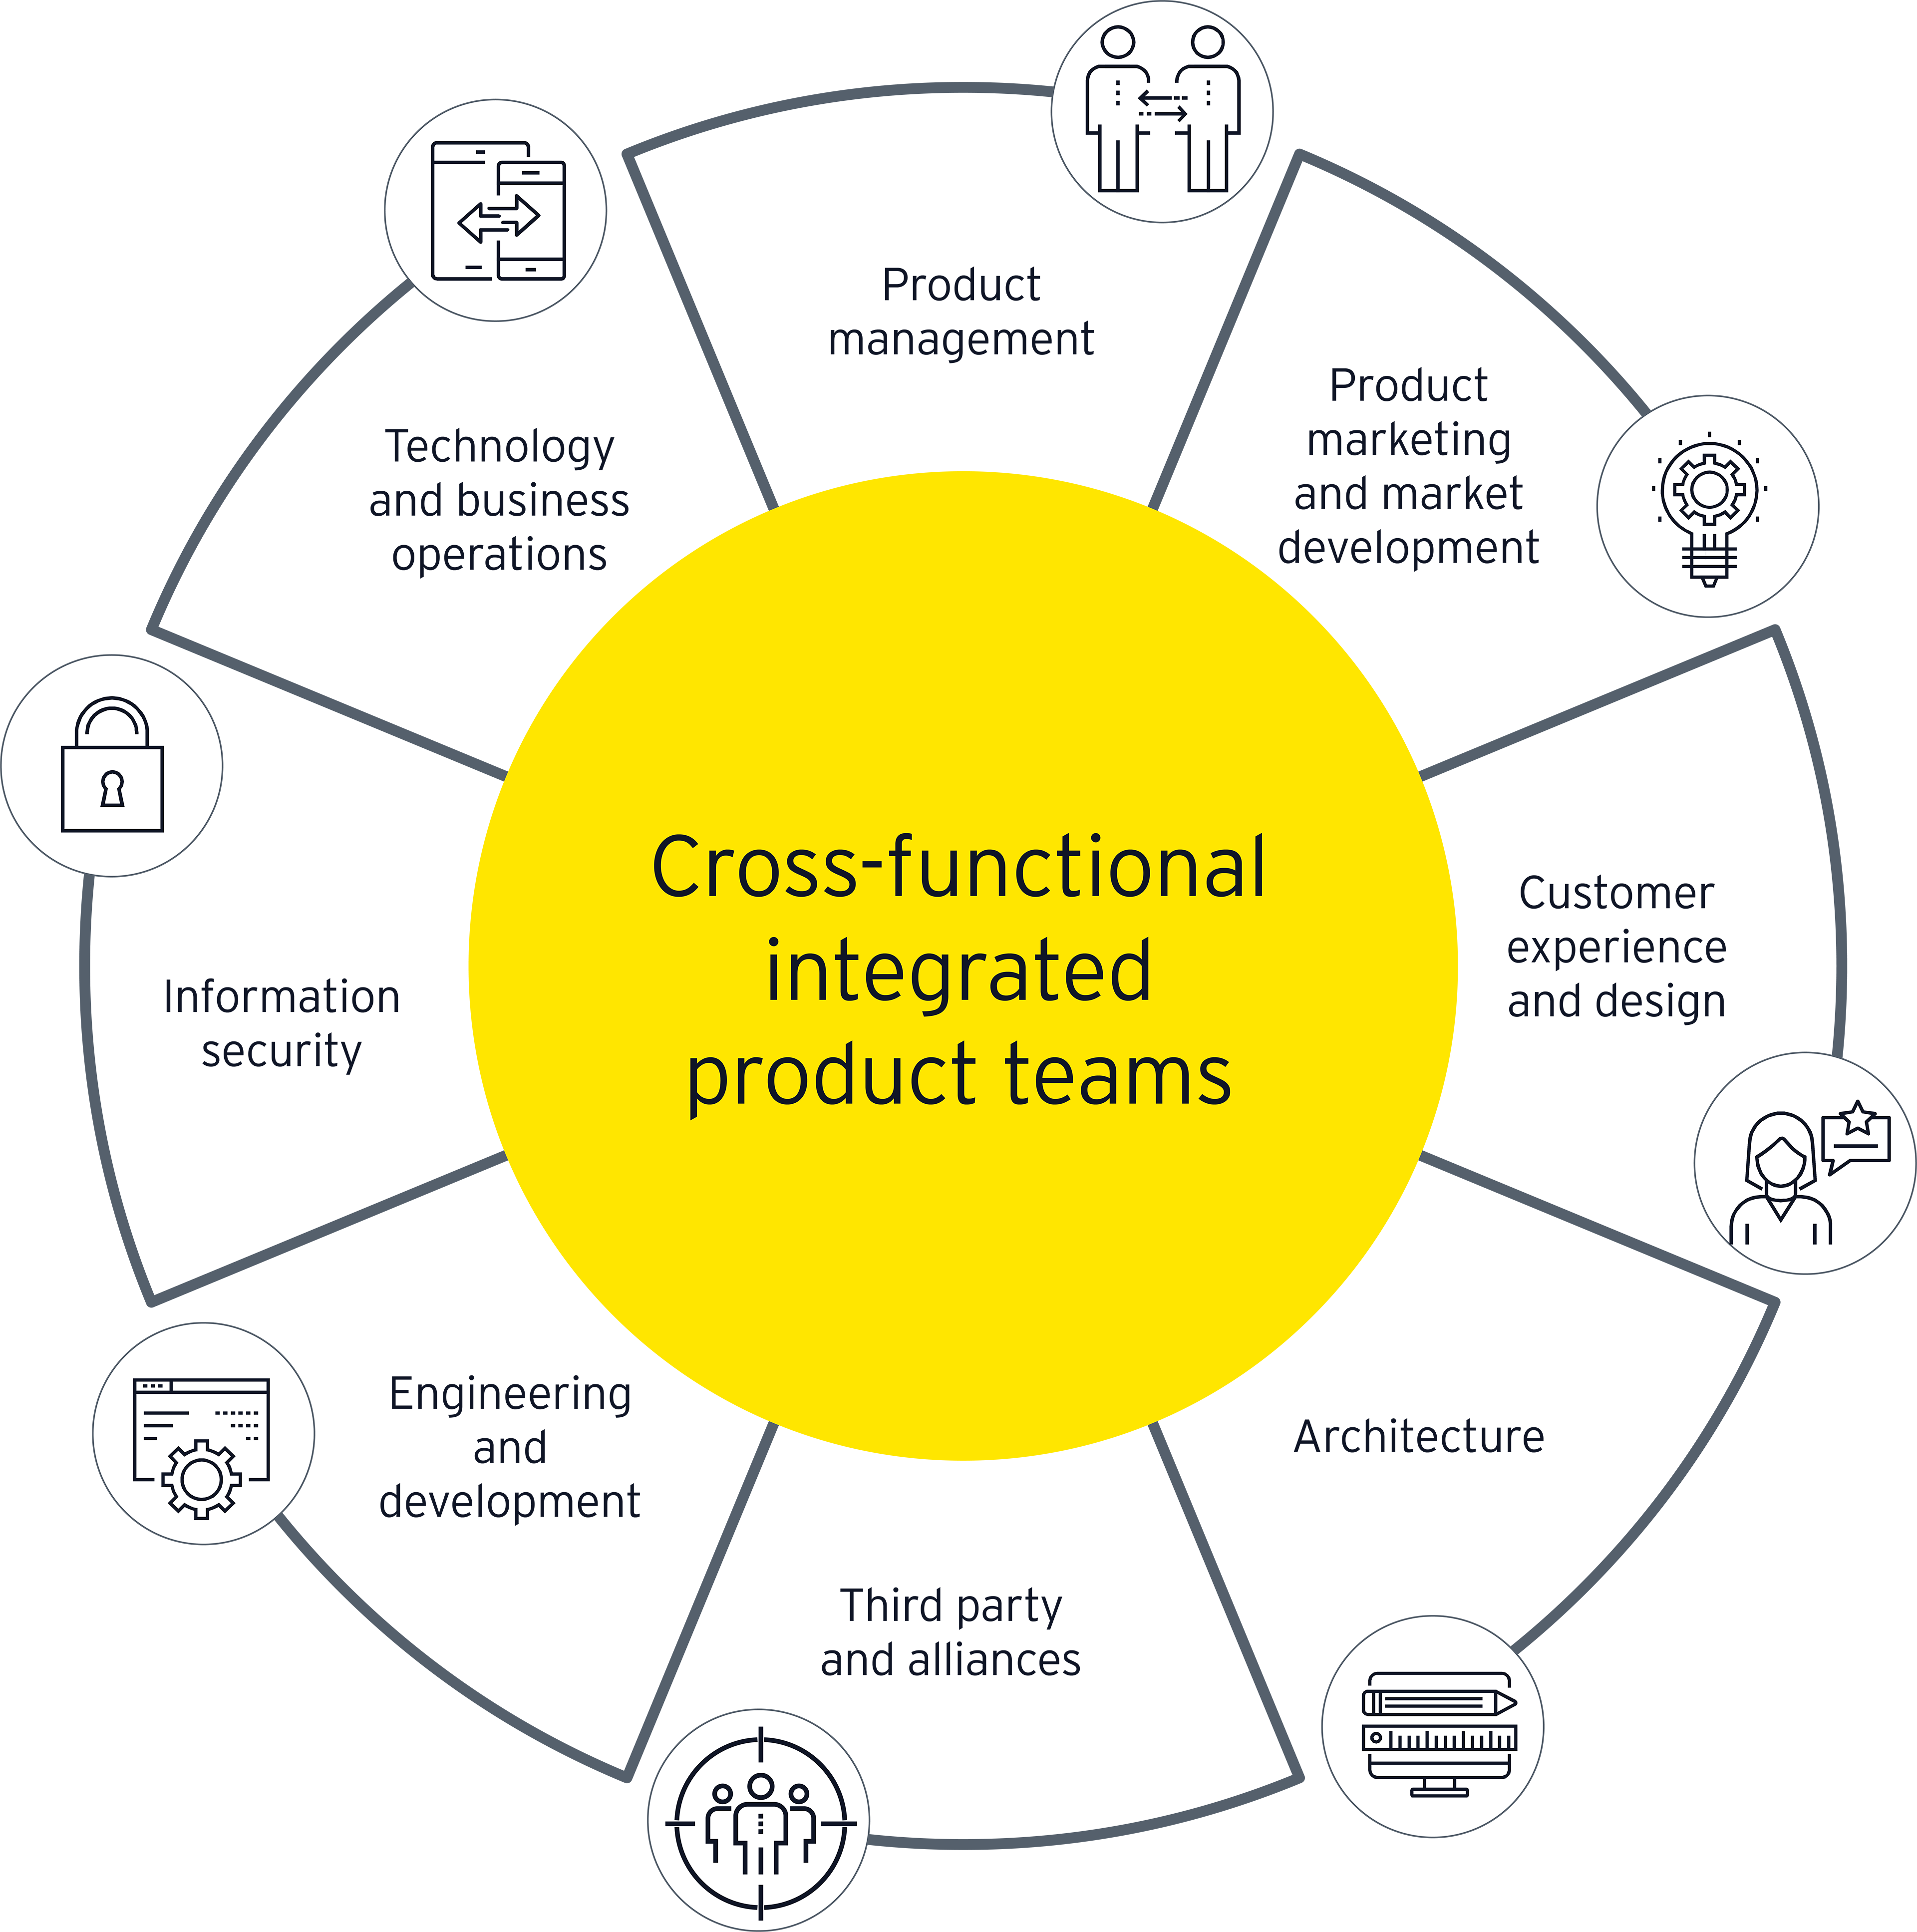 ey-cross-functional-integrated-product-teams